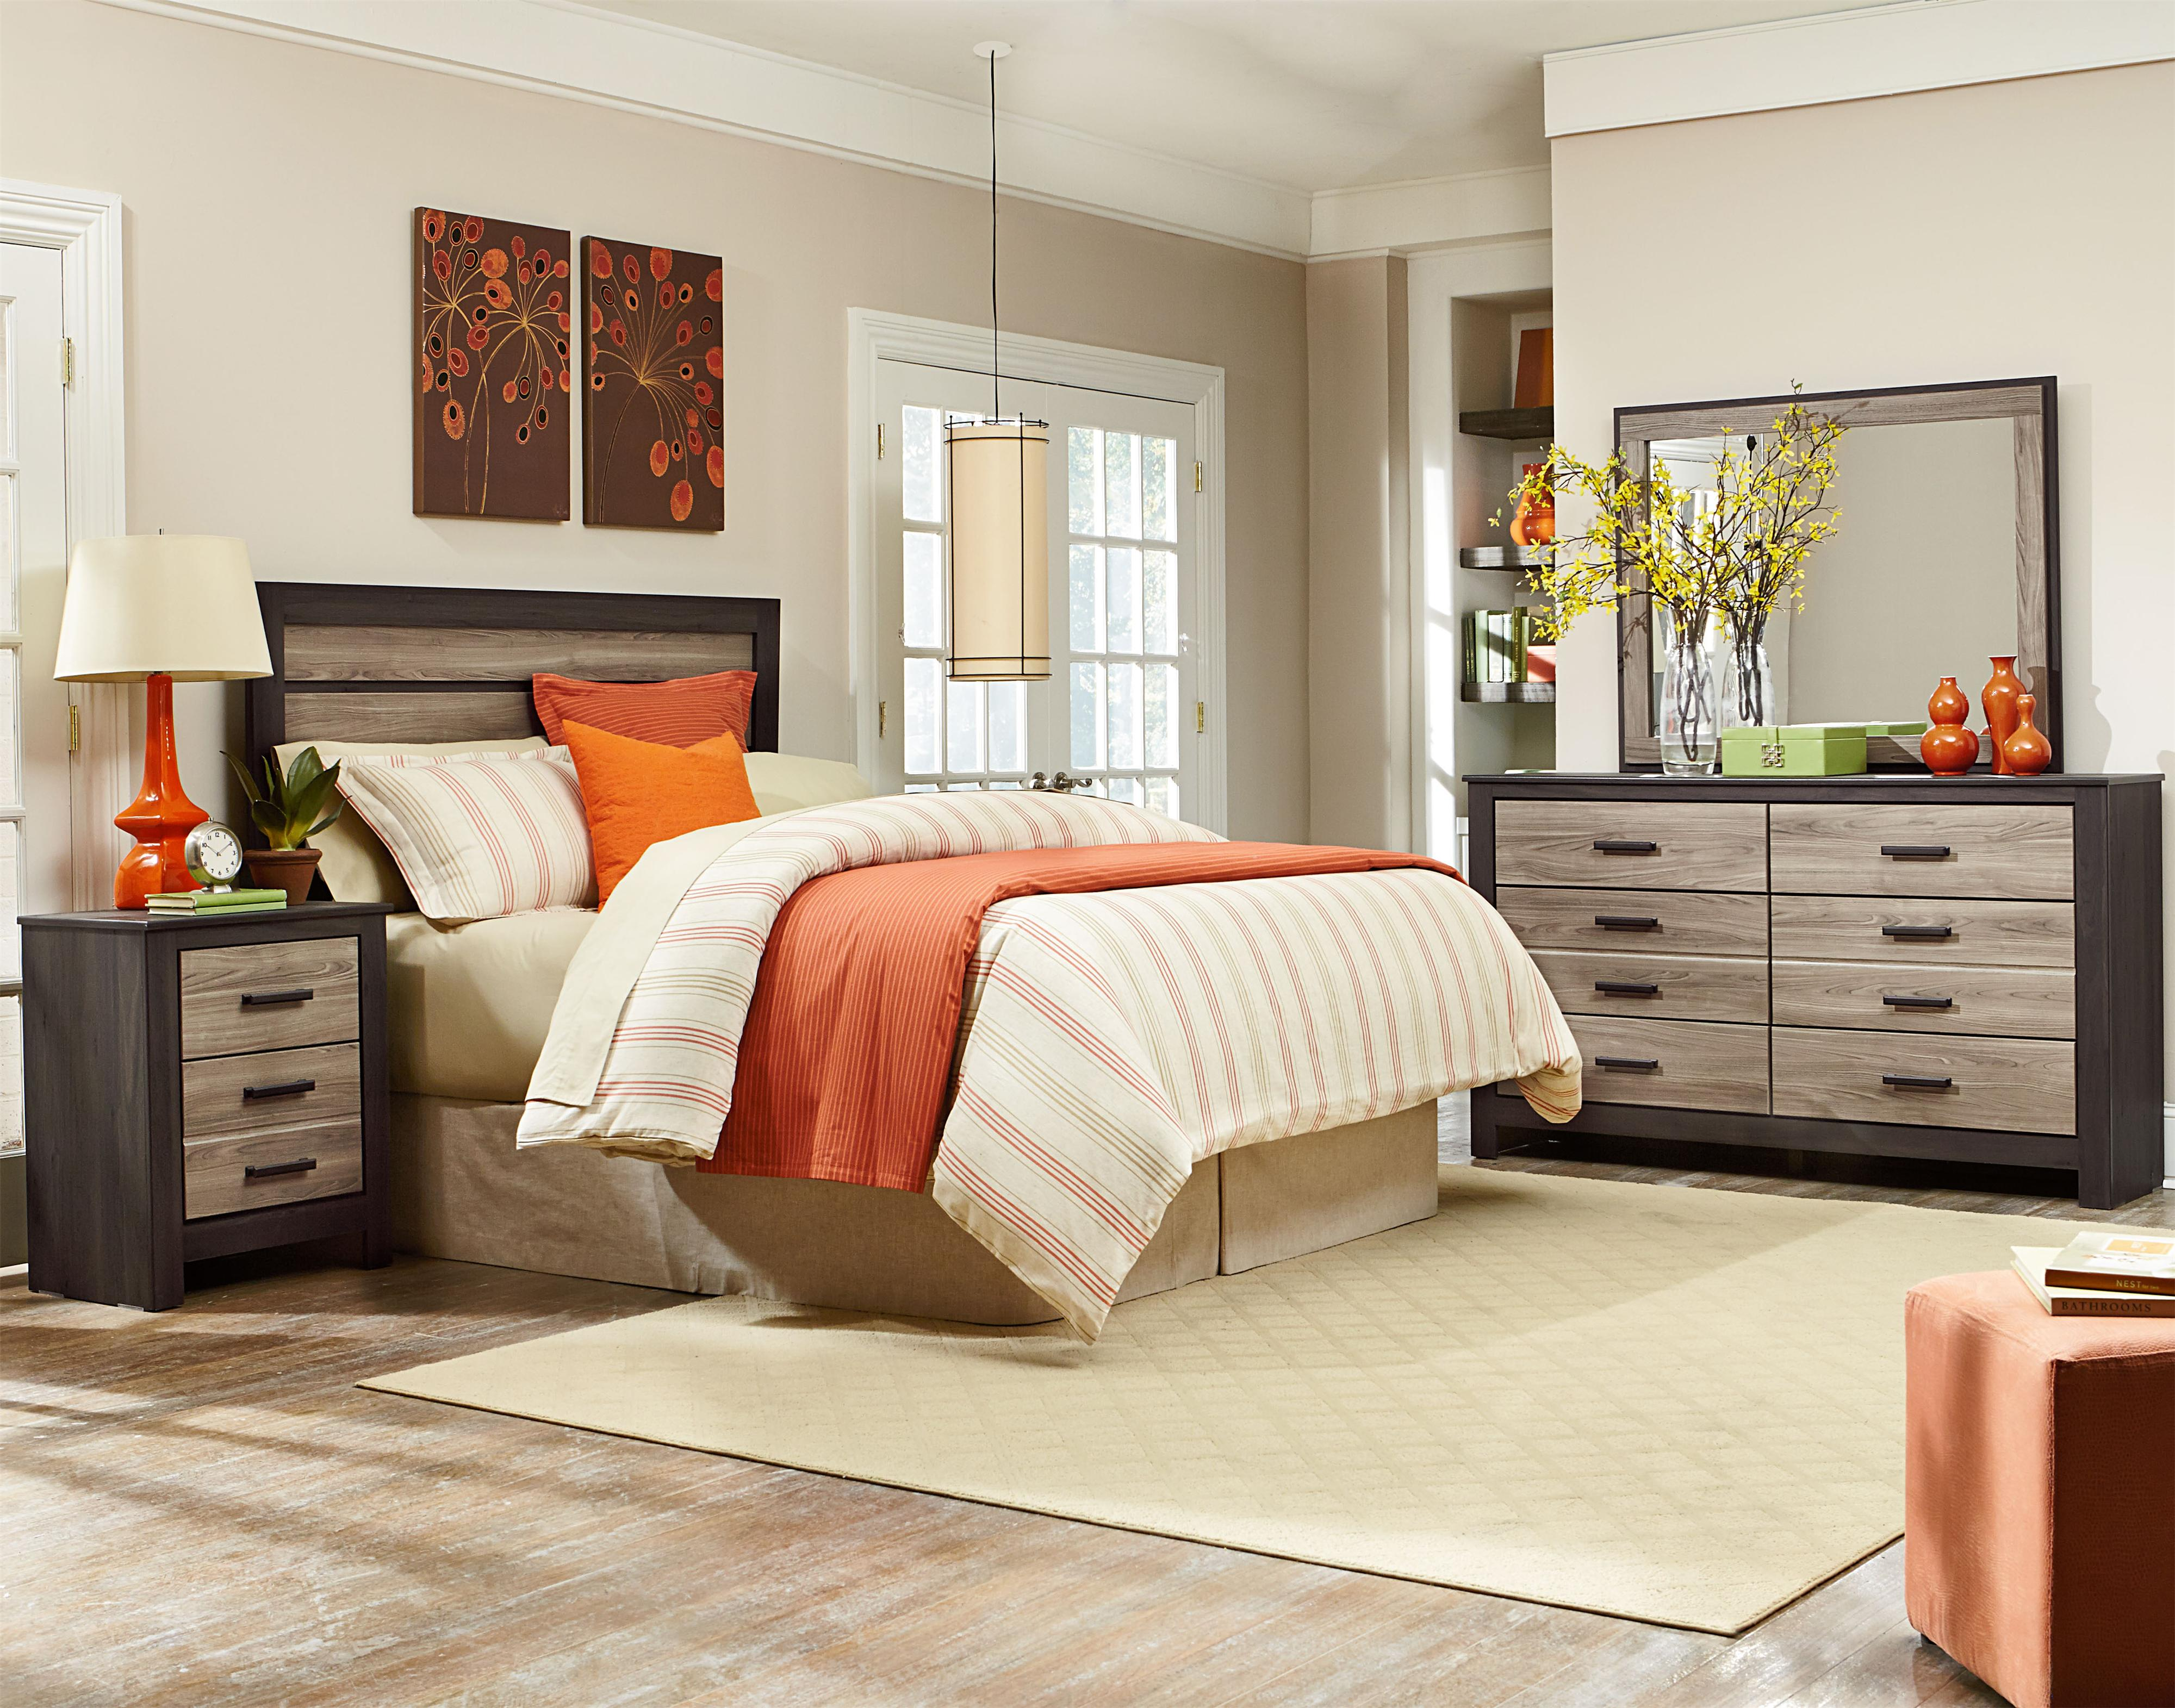 Standard Furniture Freemont King Bedroom Group - Item Number: 69750 K Bedroom Group 4